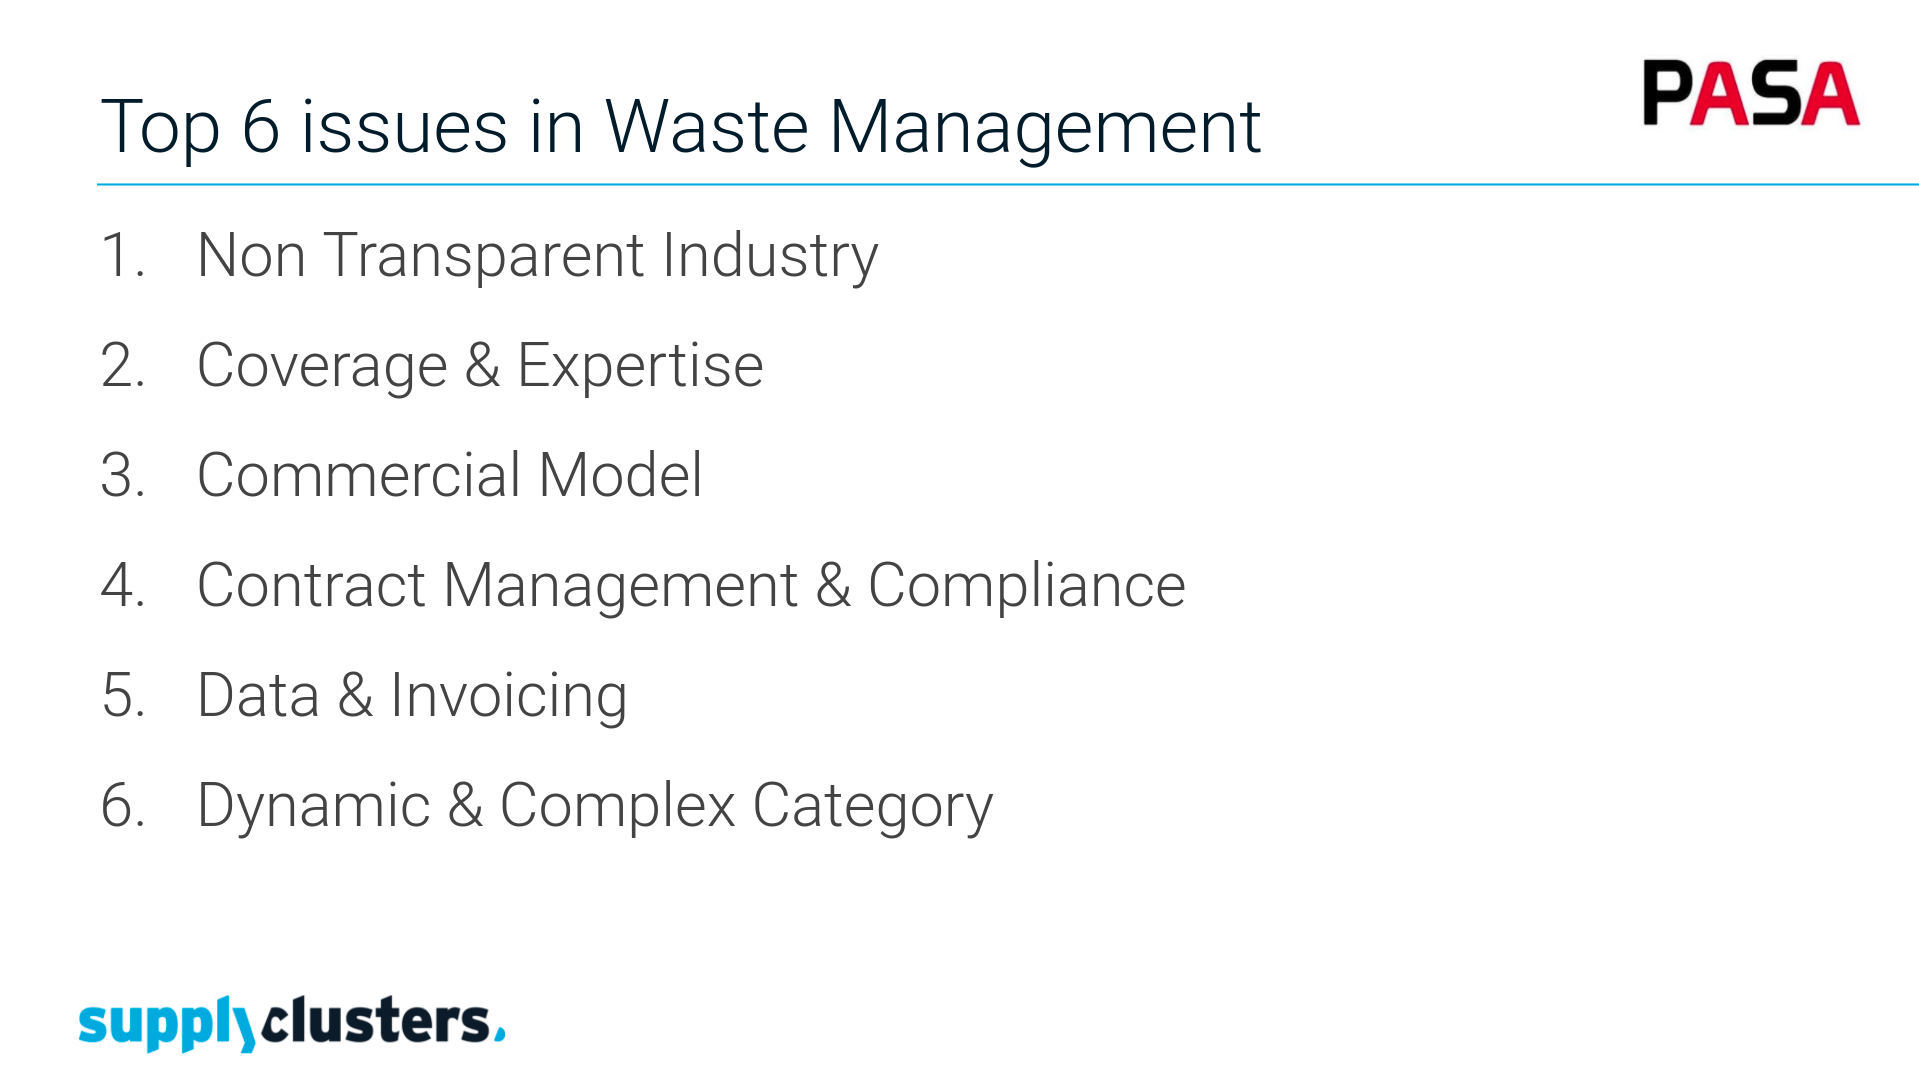 PASA Connect Top Issues in Waste Management